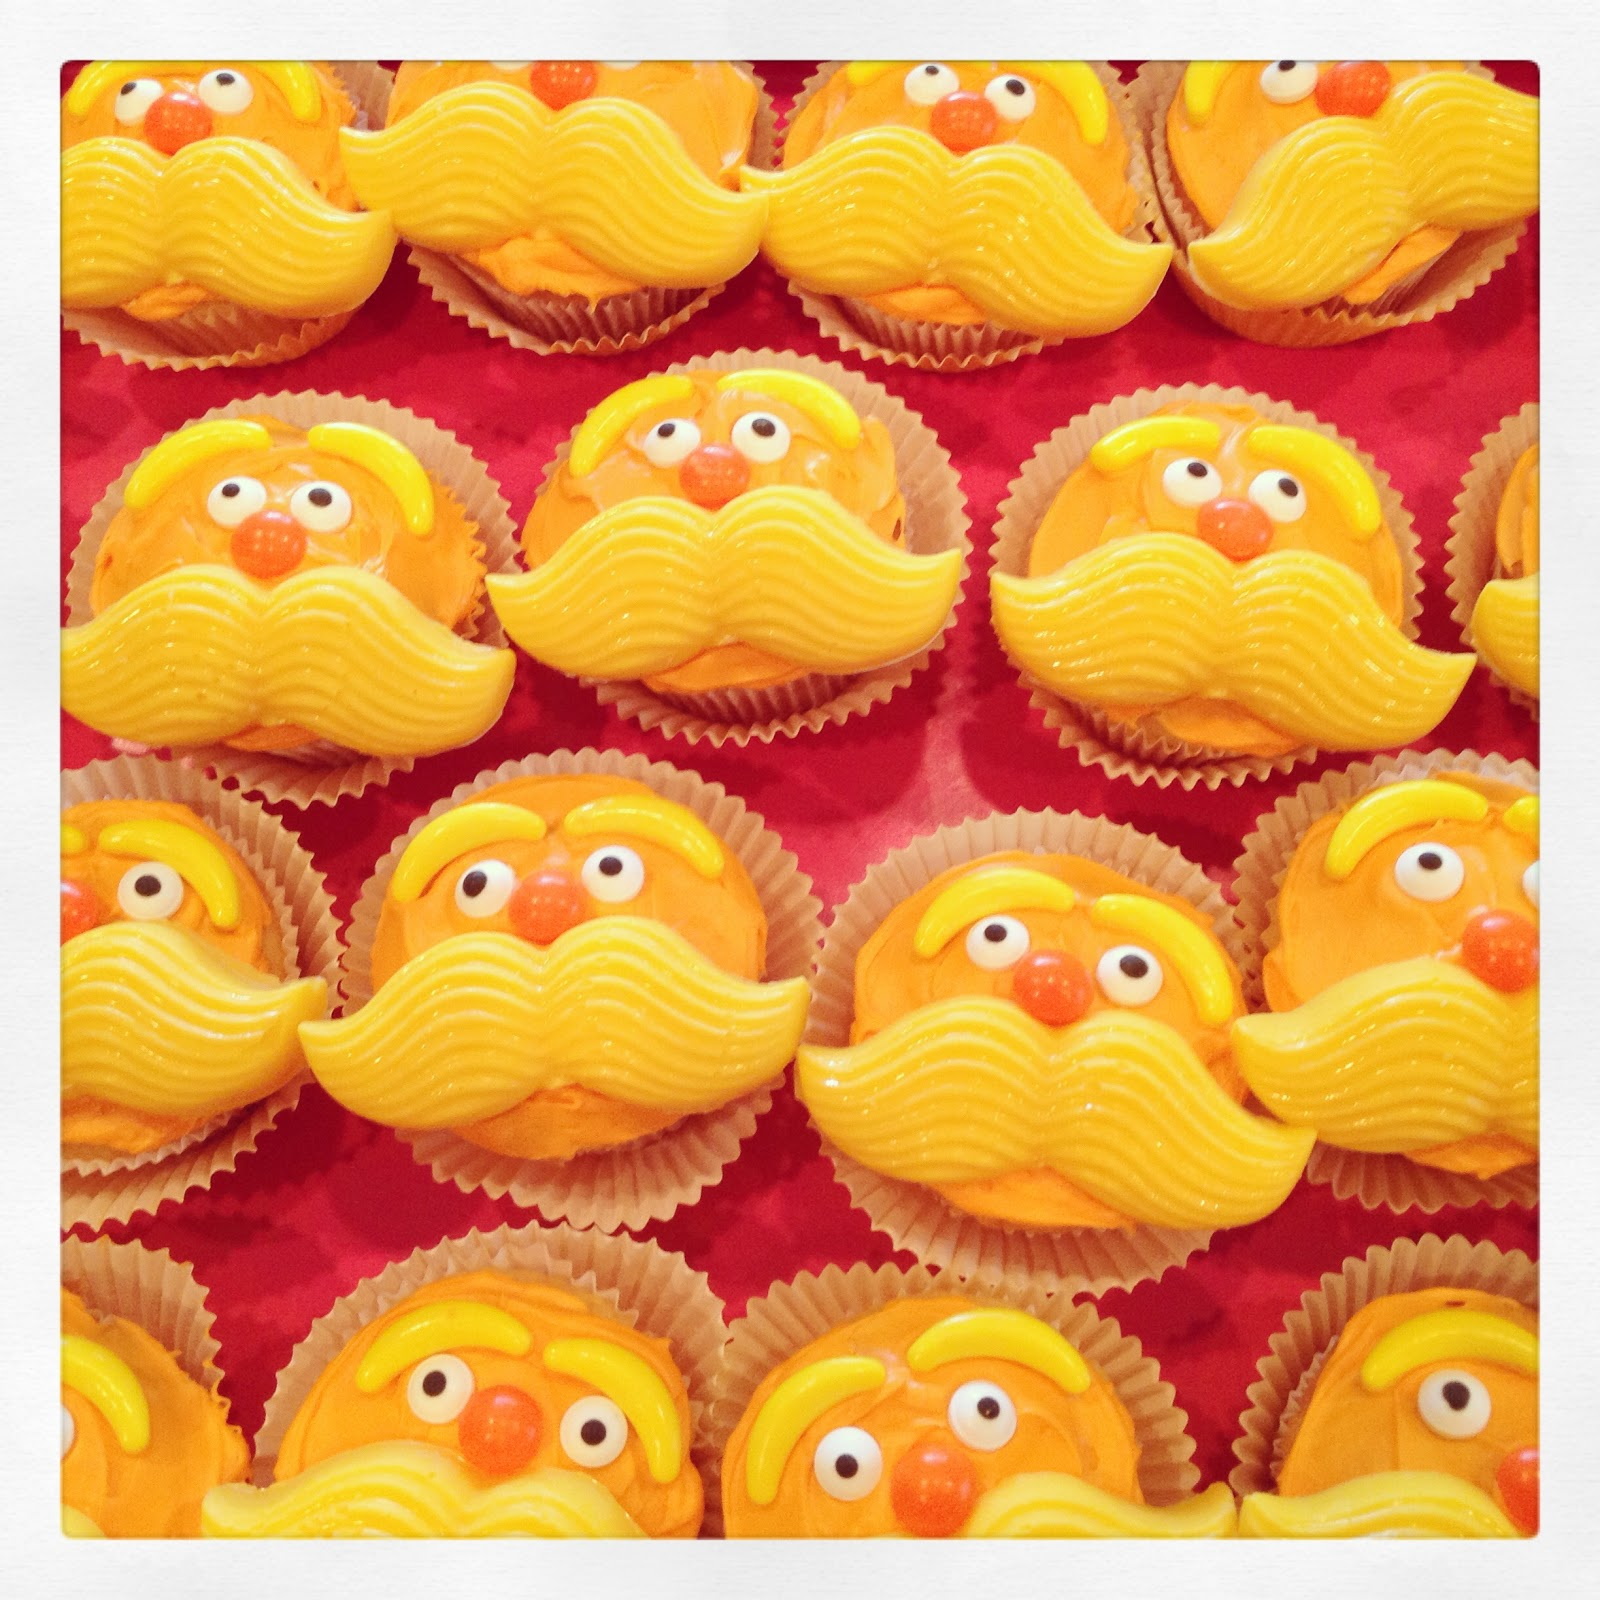 Marci Coombs The Lorax Cupcakes